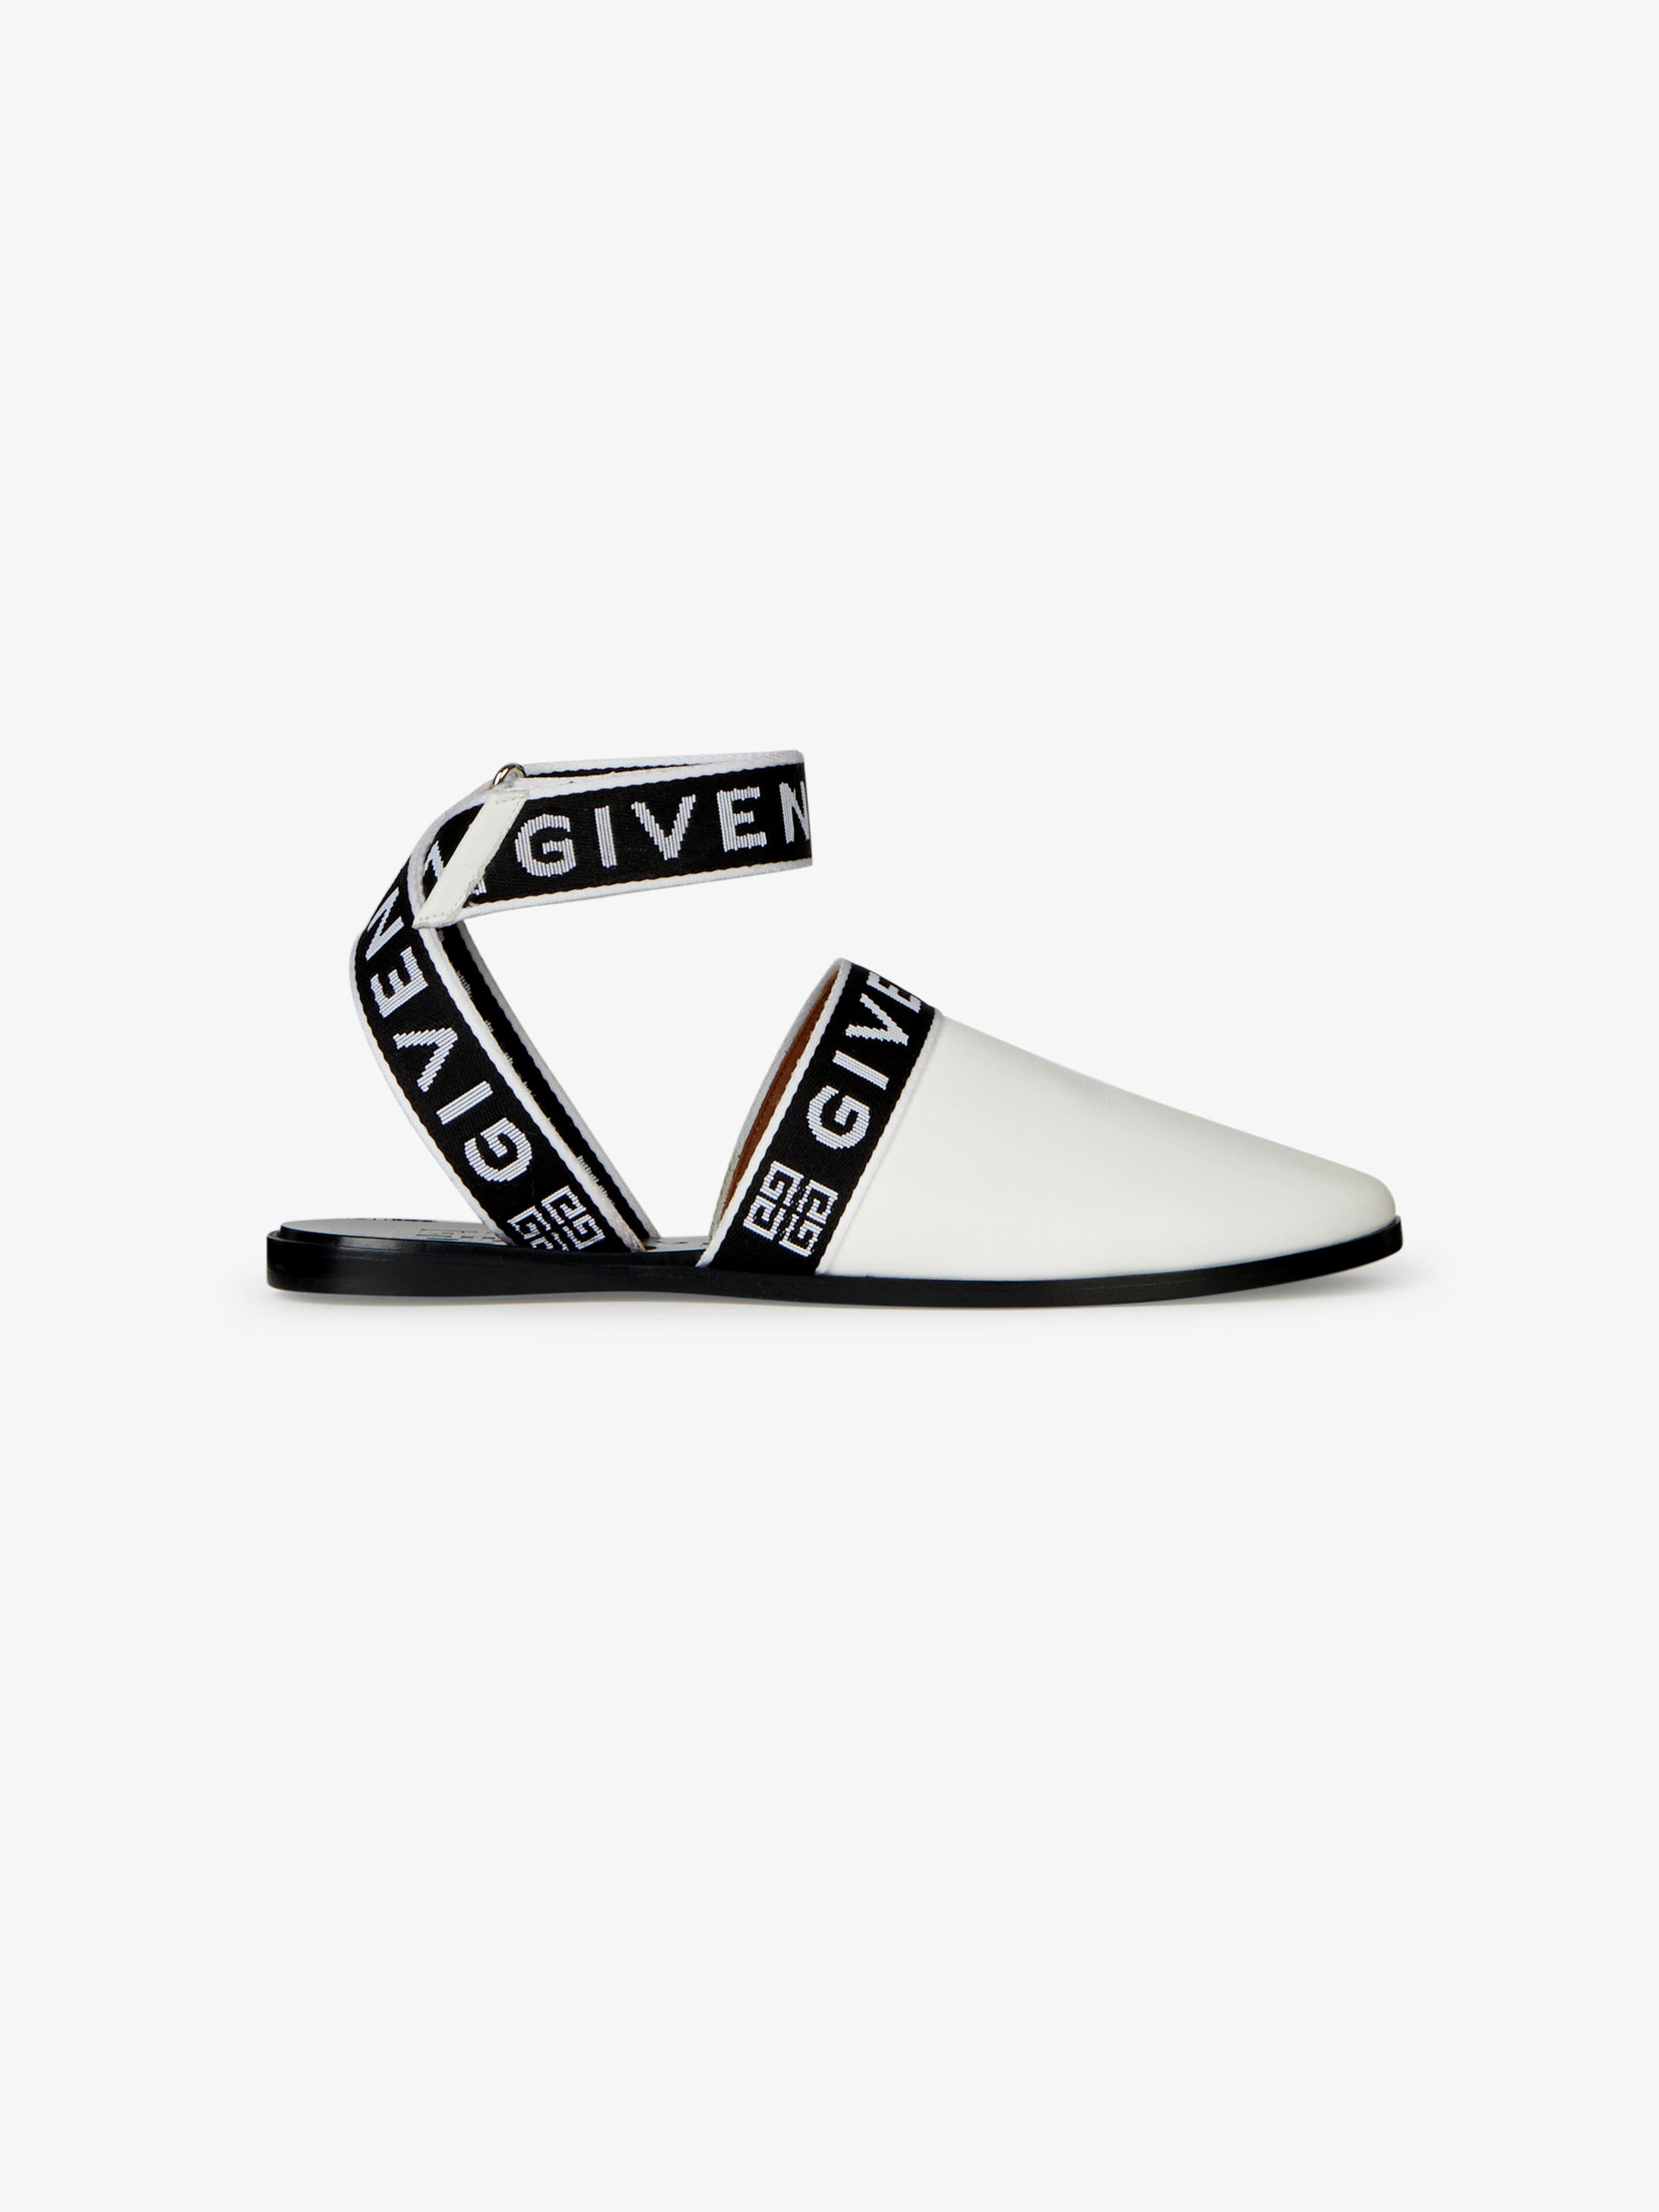 4G GIVENCHY sling back mules in leather